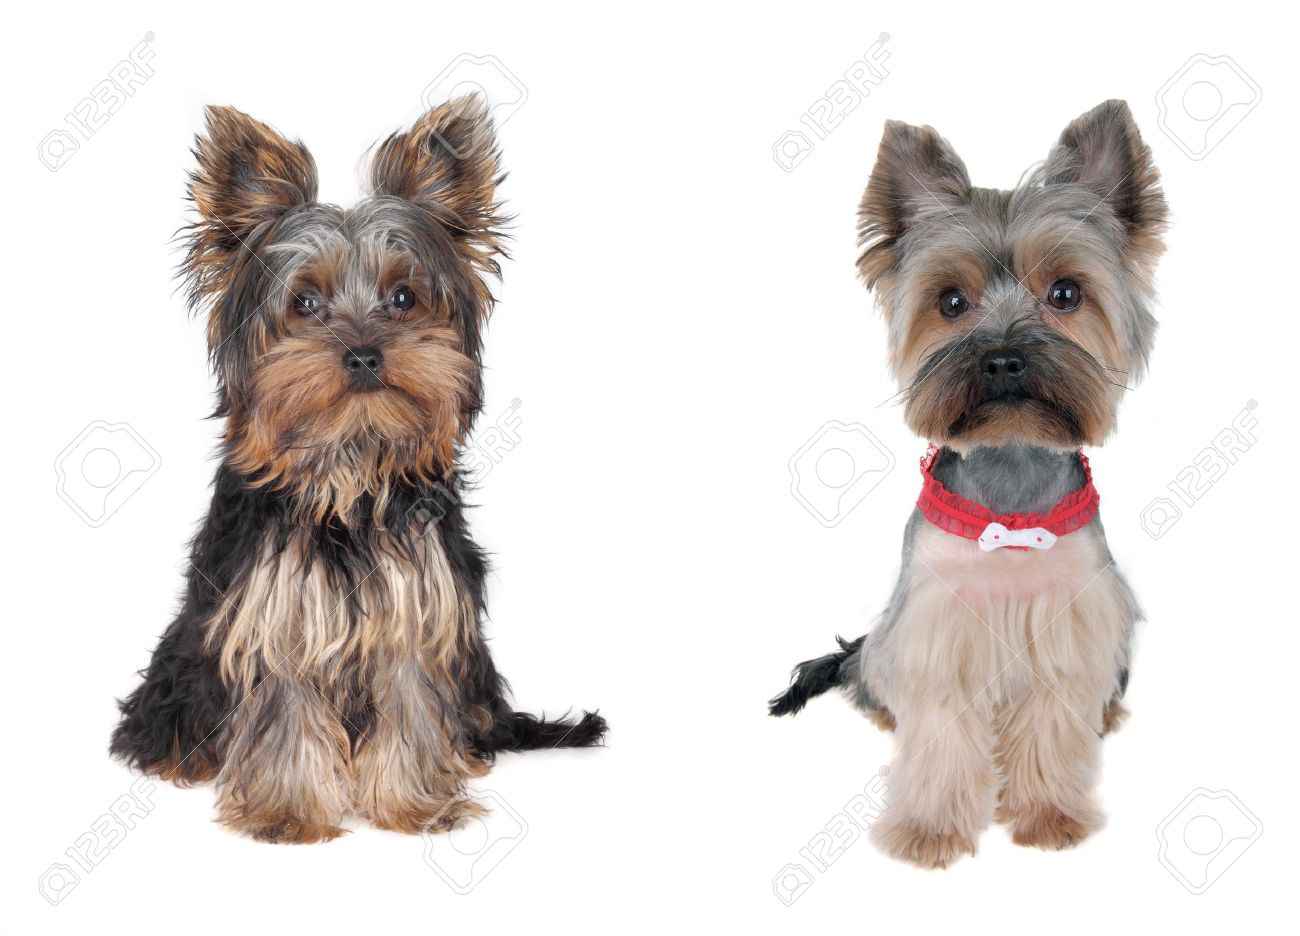 Yorkshire Terrier Grooming Needs Information Keywords And Pictures